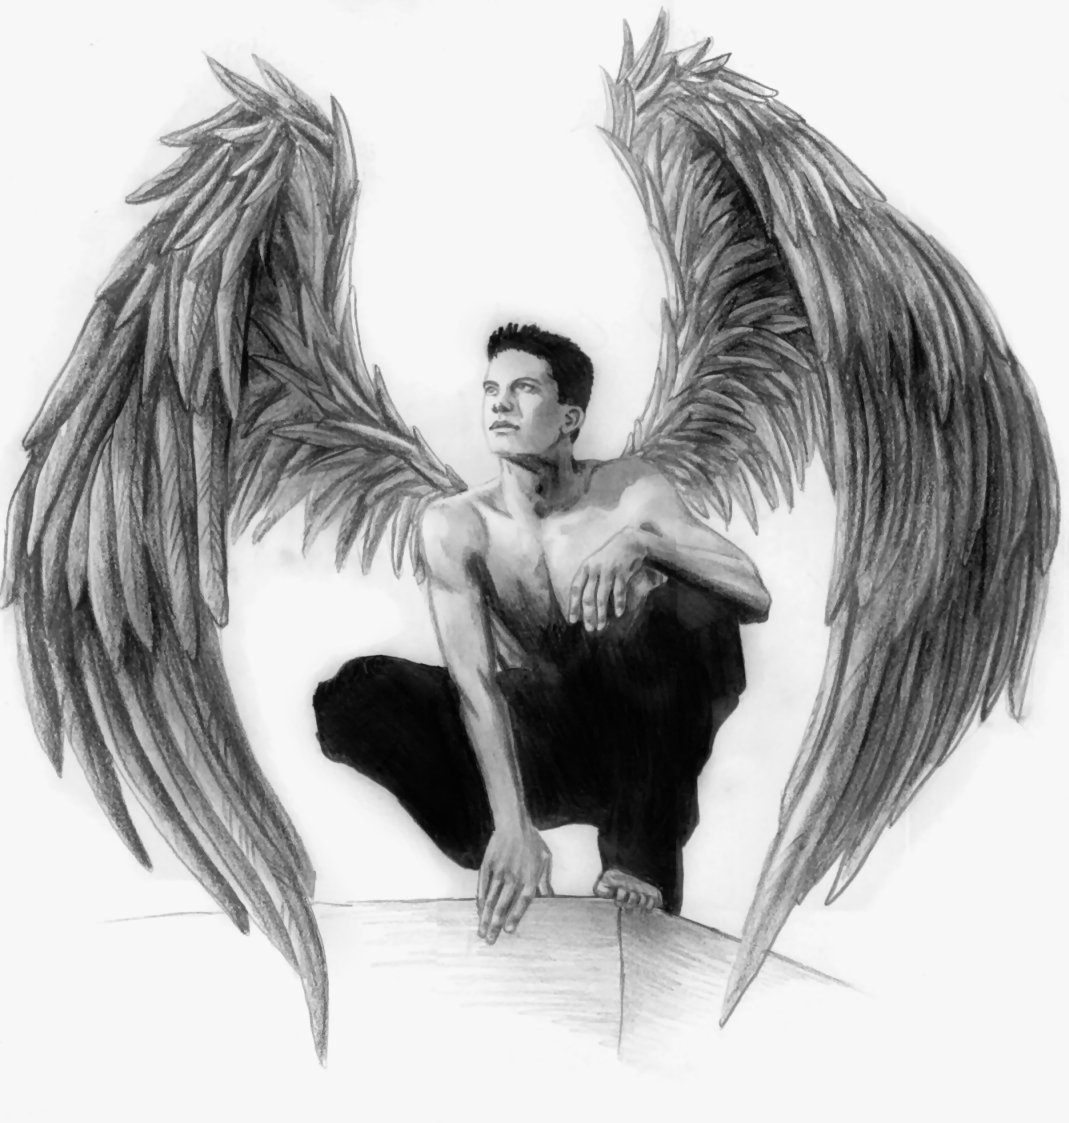 Drawn angel guy Pinterest Crying Drawing Crying Male